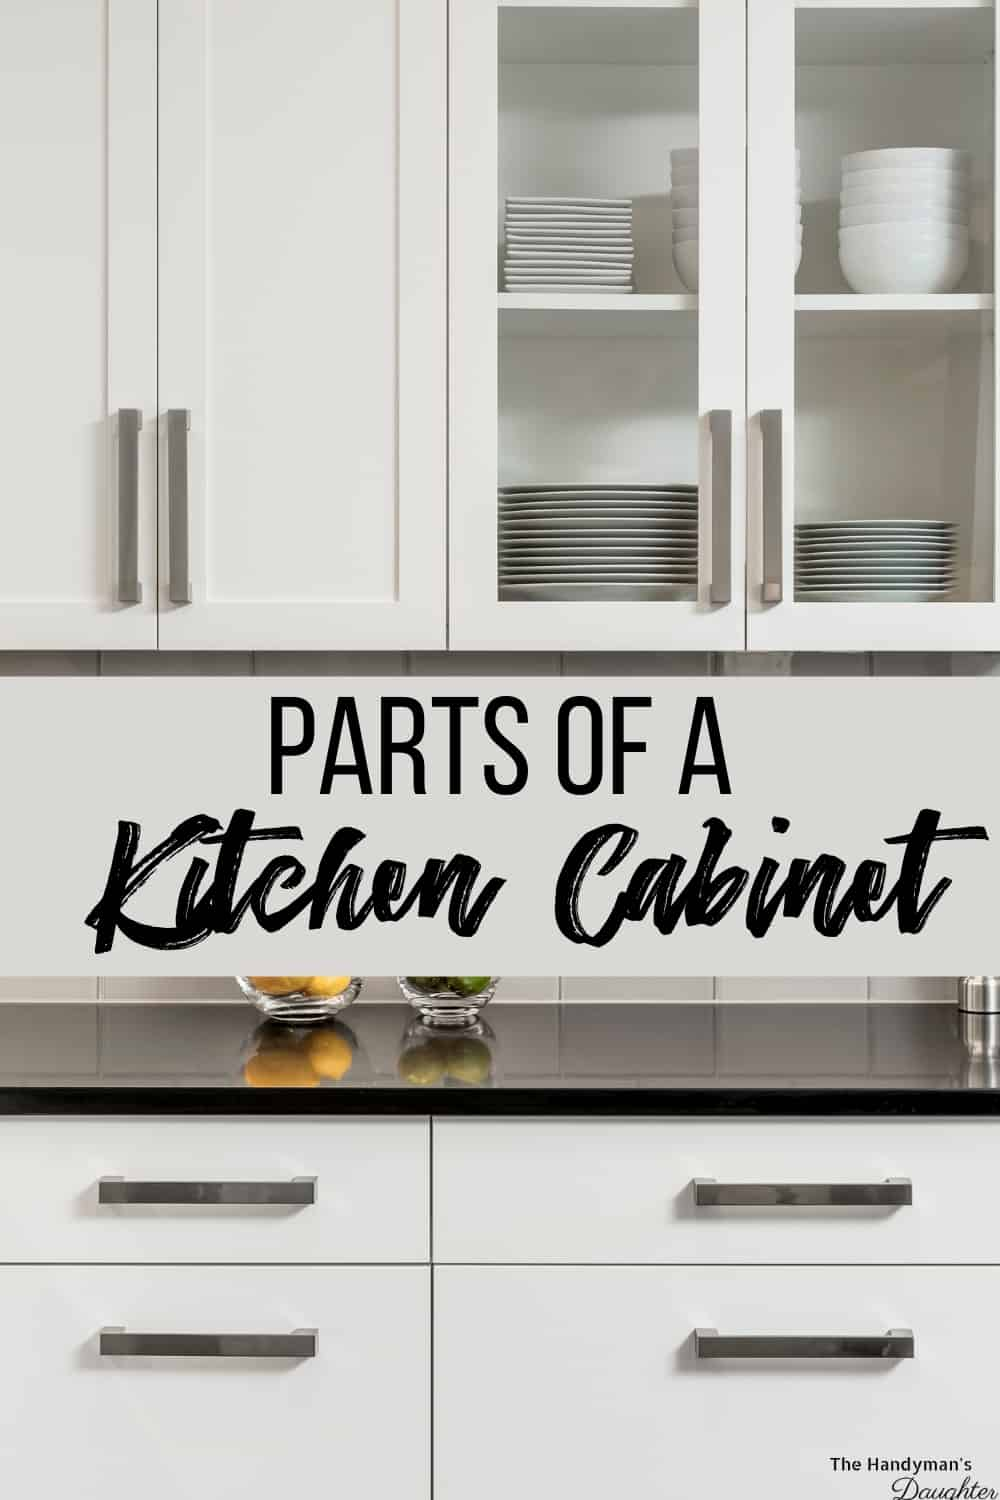 """white kitchen cabinets with text overlay """"parts of a cabinet"""""""